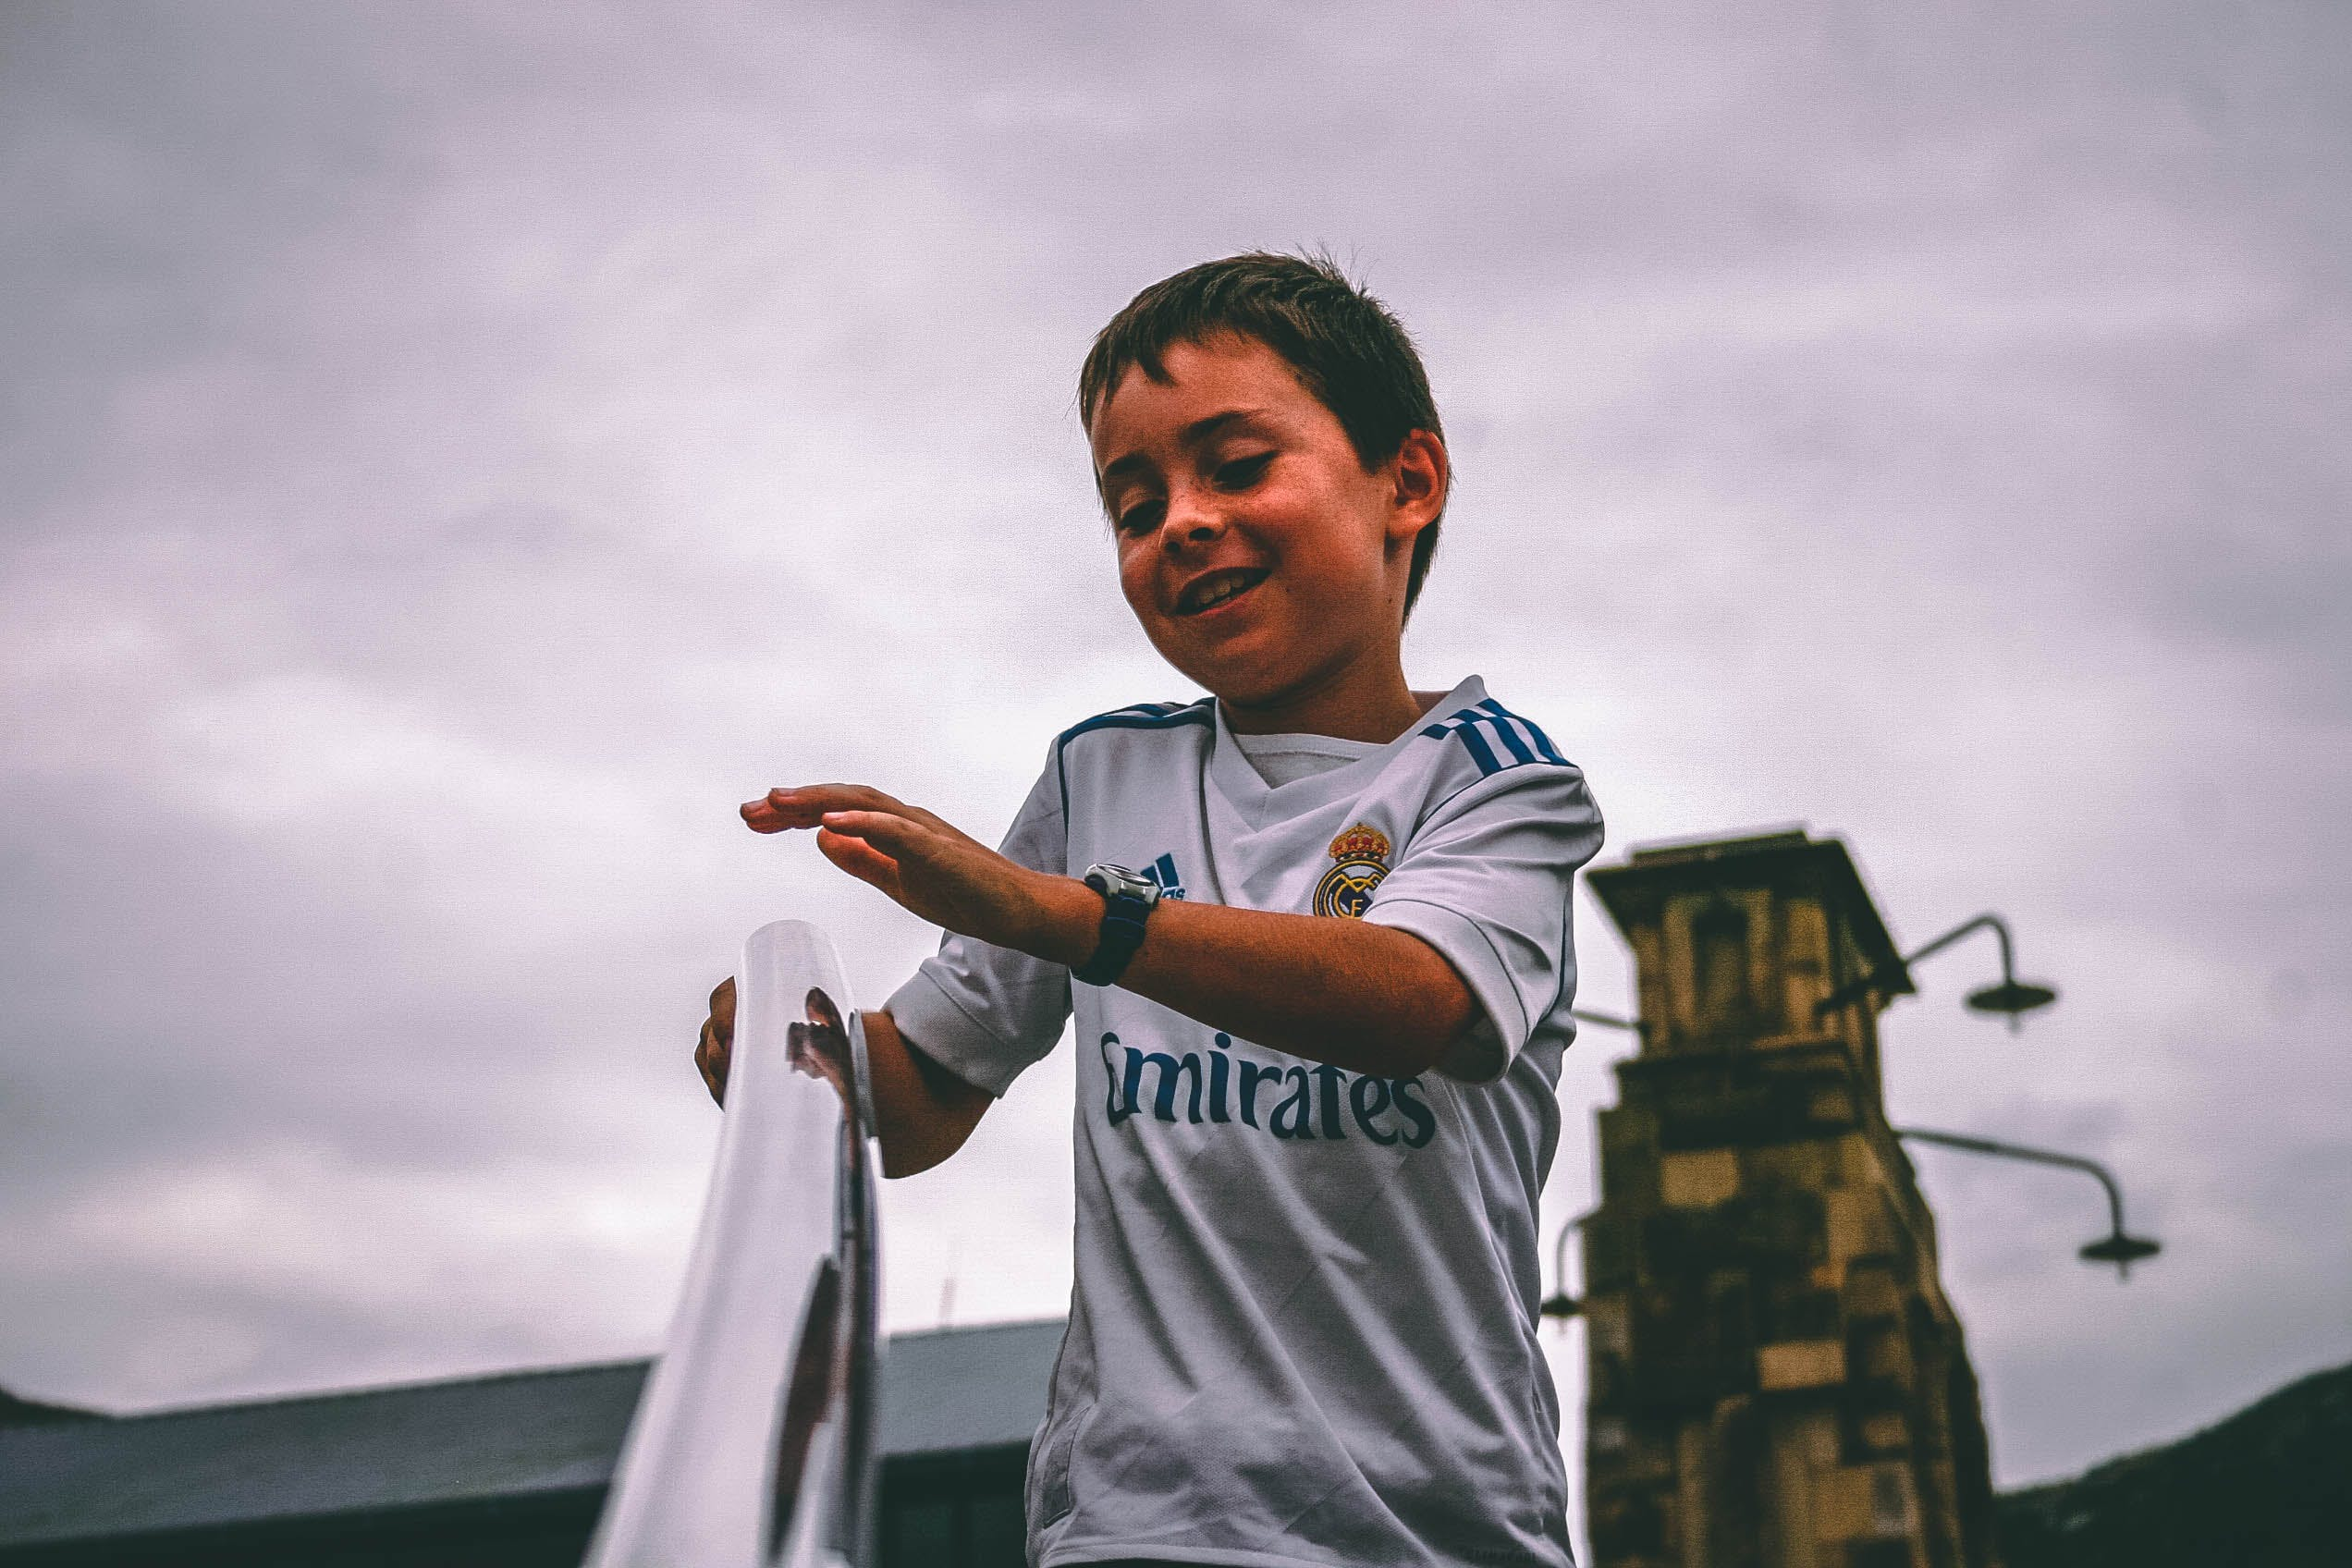 Boy in White and Blue Fly Emirates Jersey Shirt Holding on Stairs Grab Bar Under Gray Skies